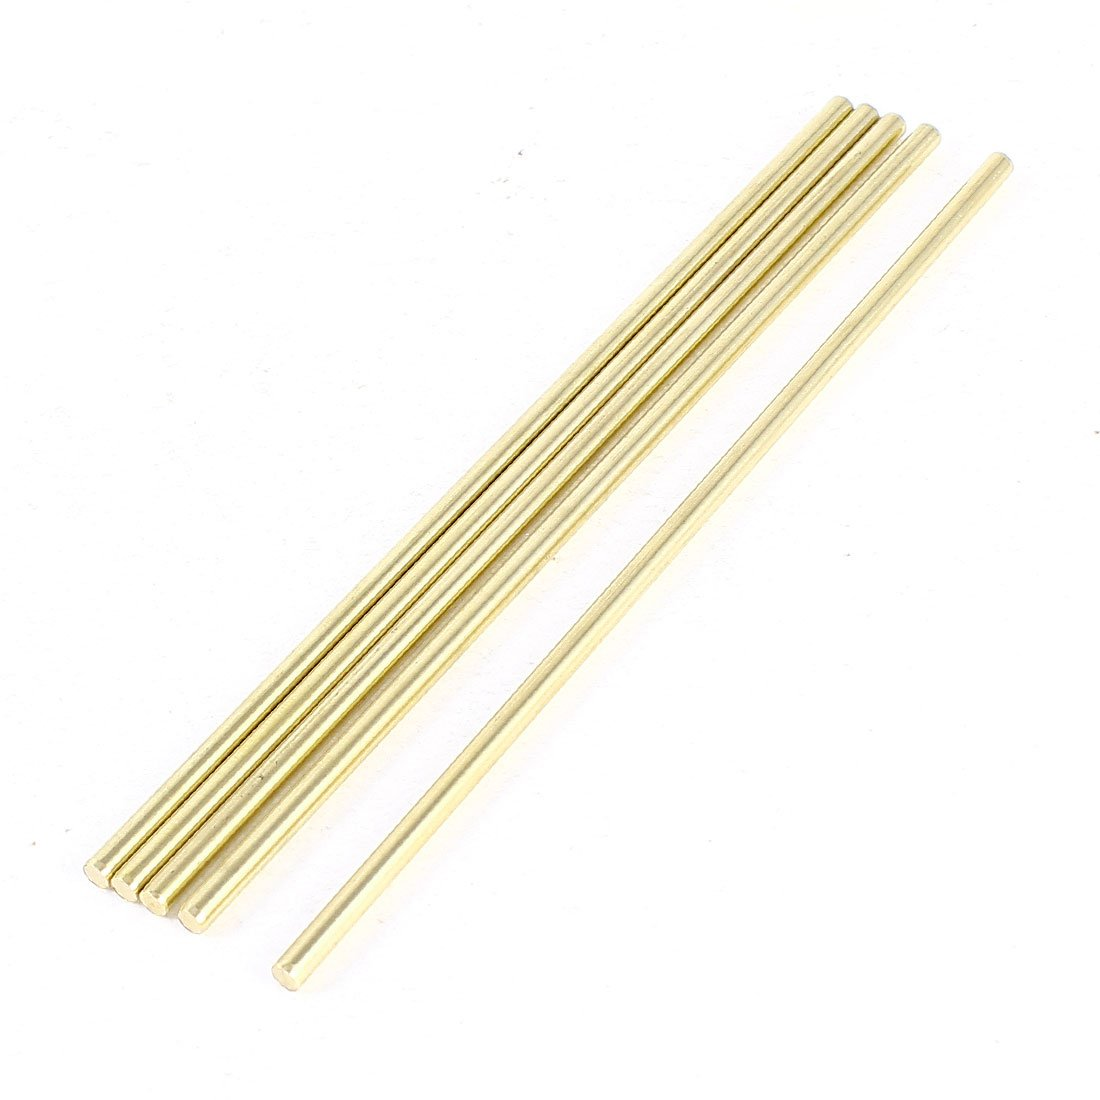 Sourcingmap  Car Helicopter Model Toy DIY Brass Axles Rod Bars 3mm x 120mm - 5 Pcs, Gold a14052900ux0009